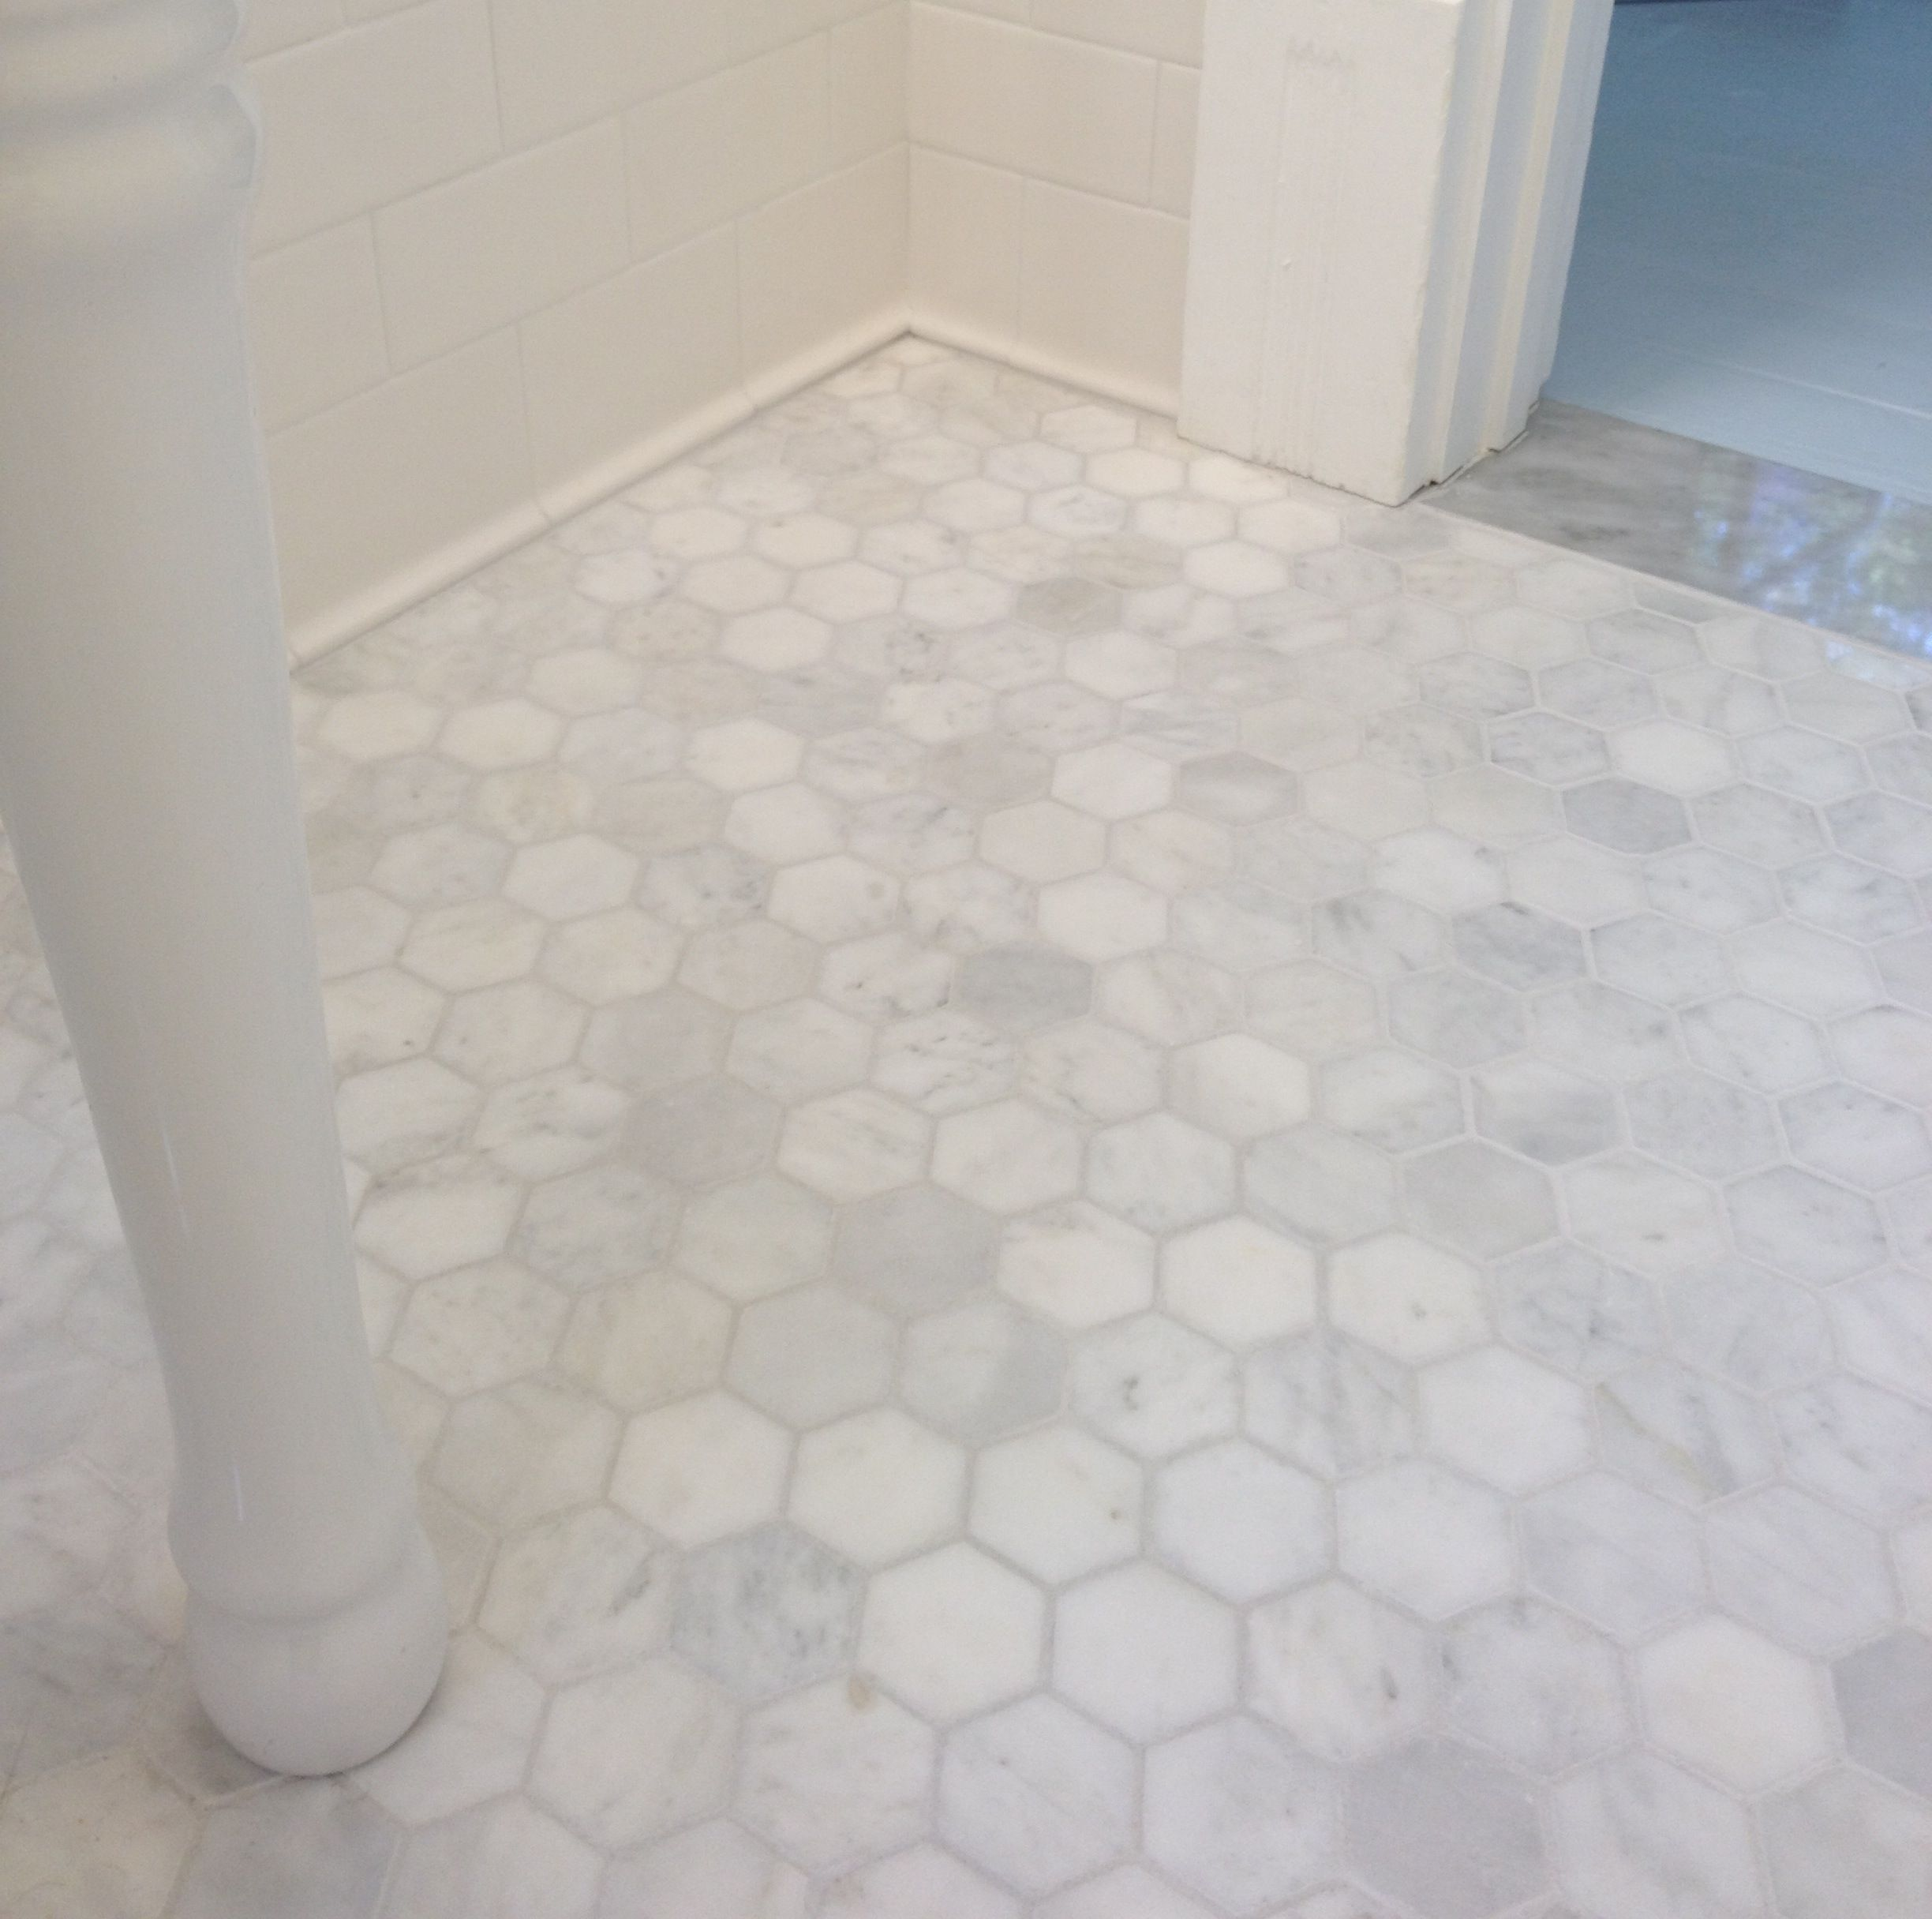 Exceptionnel Marble Hexagon Tile, Grey Grout, Subway Tile, Porcelain Console Sink. Grey  Carrara Marble